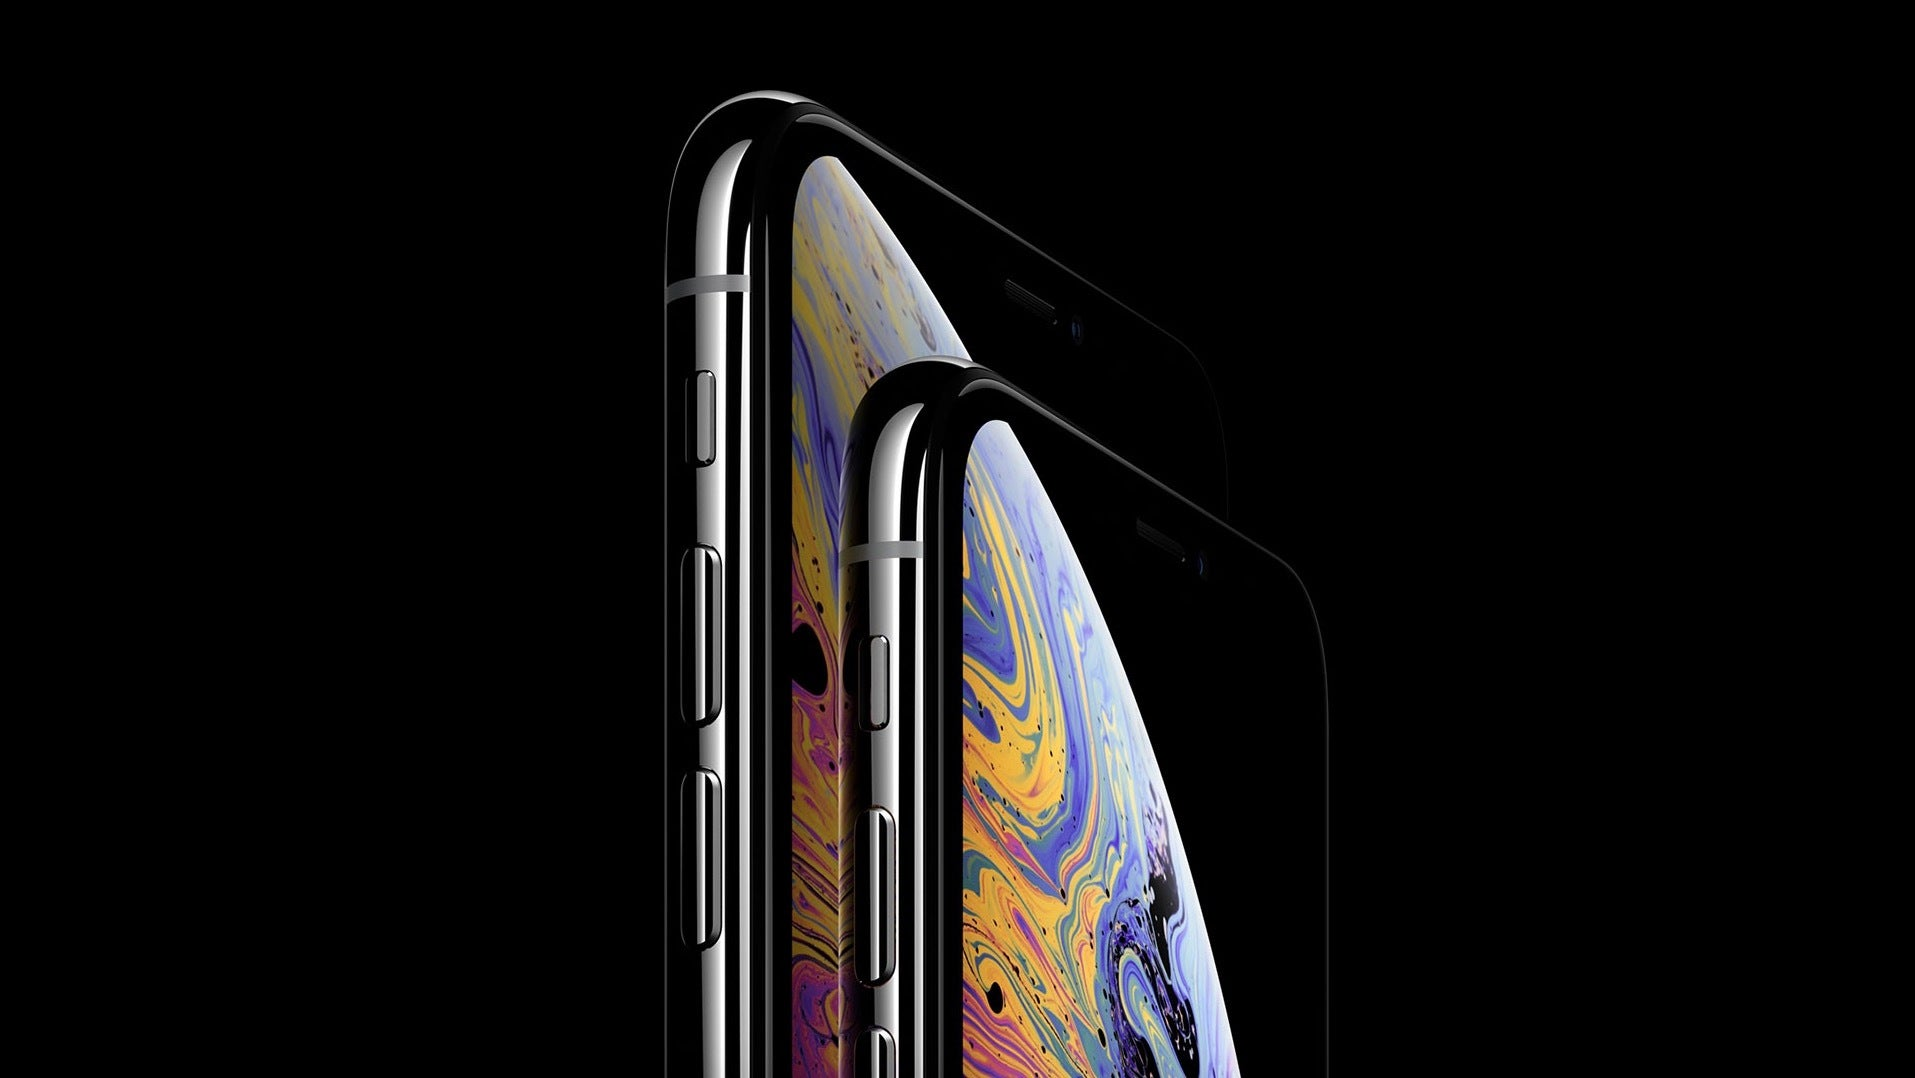 apple feature iphone iphone-x iphone-xs iphone-xs-max lawsuits saga